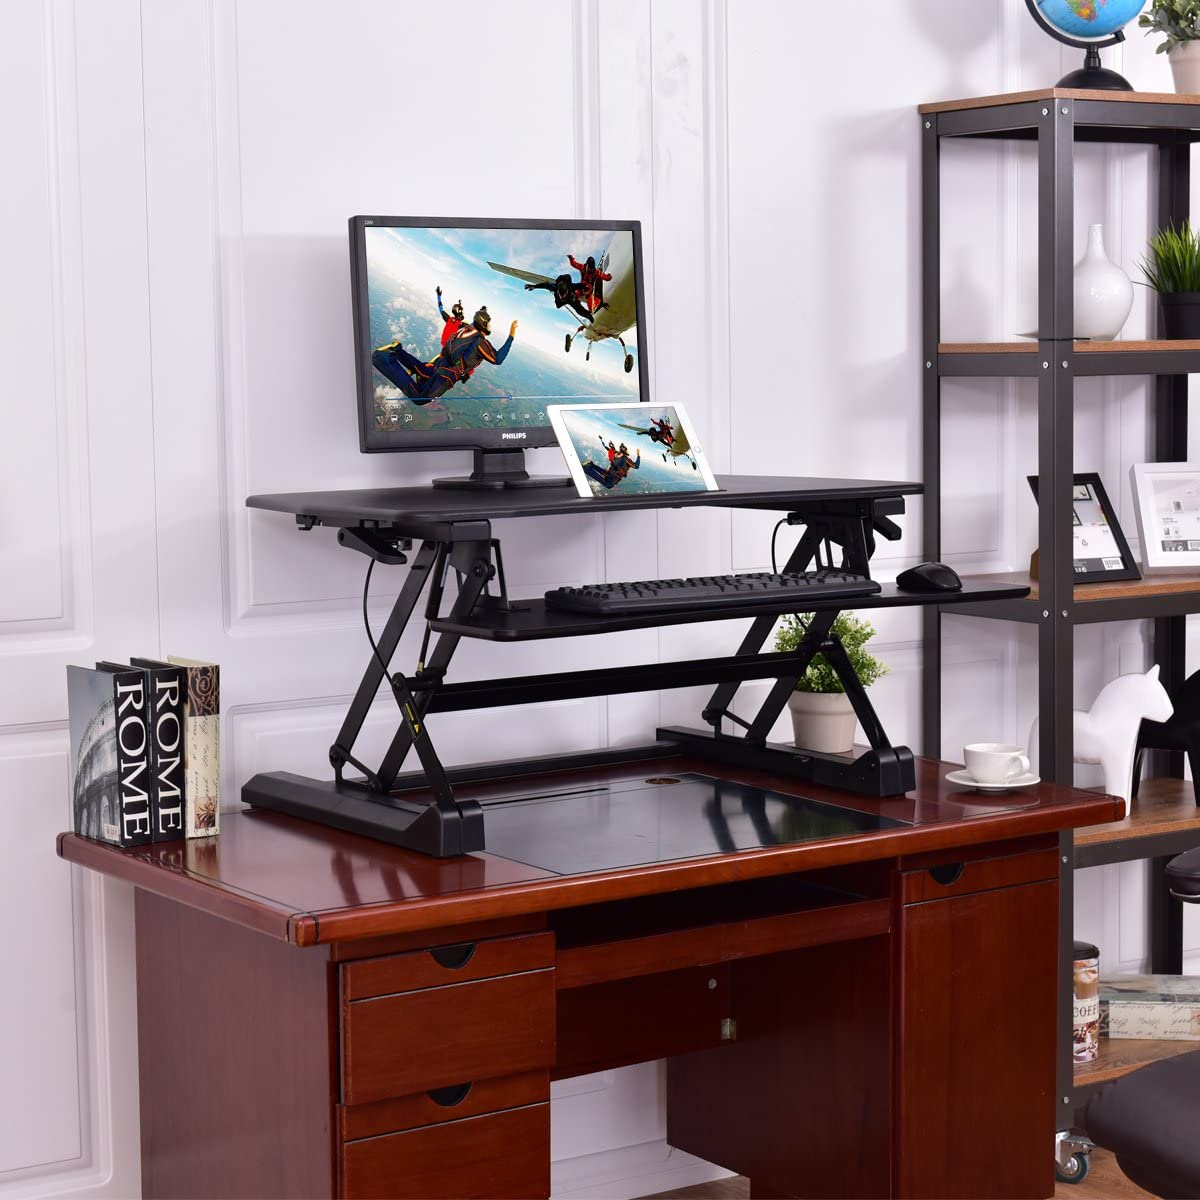 Tangkula Standing Desk, 50lbs Computer Workstations, Height Adjustable Sit-Stand Desk with Keyboard Tray Elevating Desktop Workstation for Dual Monitor, Black